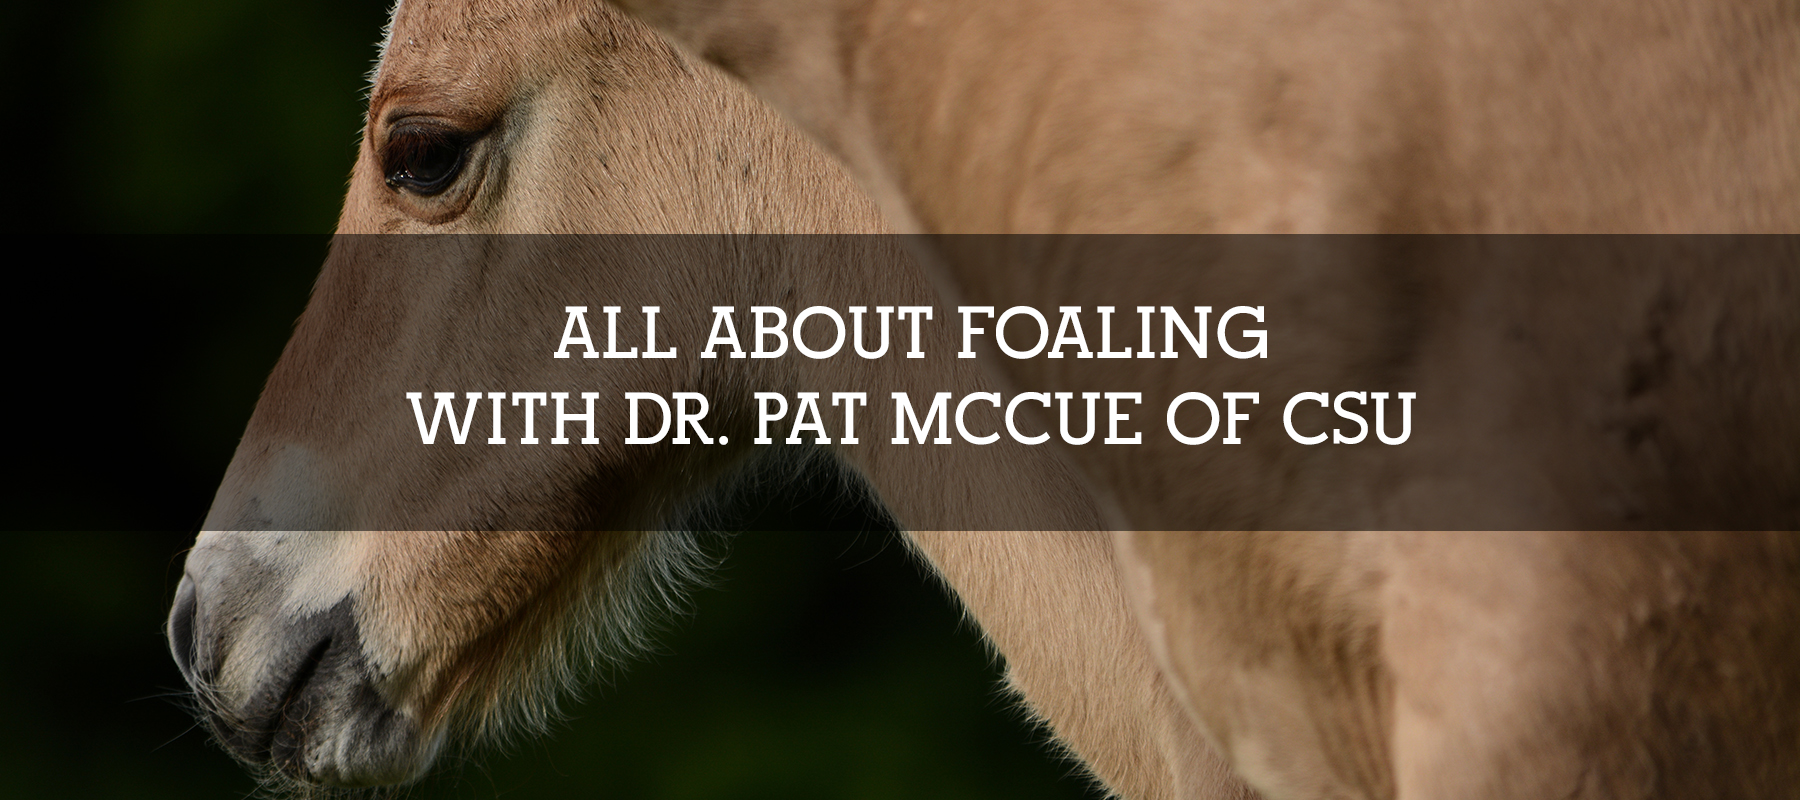 ALL ABOUT FOALING WITH DR. PAT MCCUE OF CSU